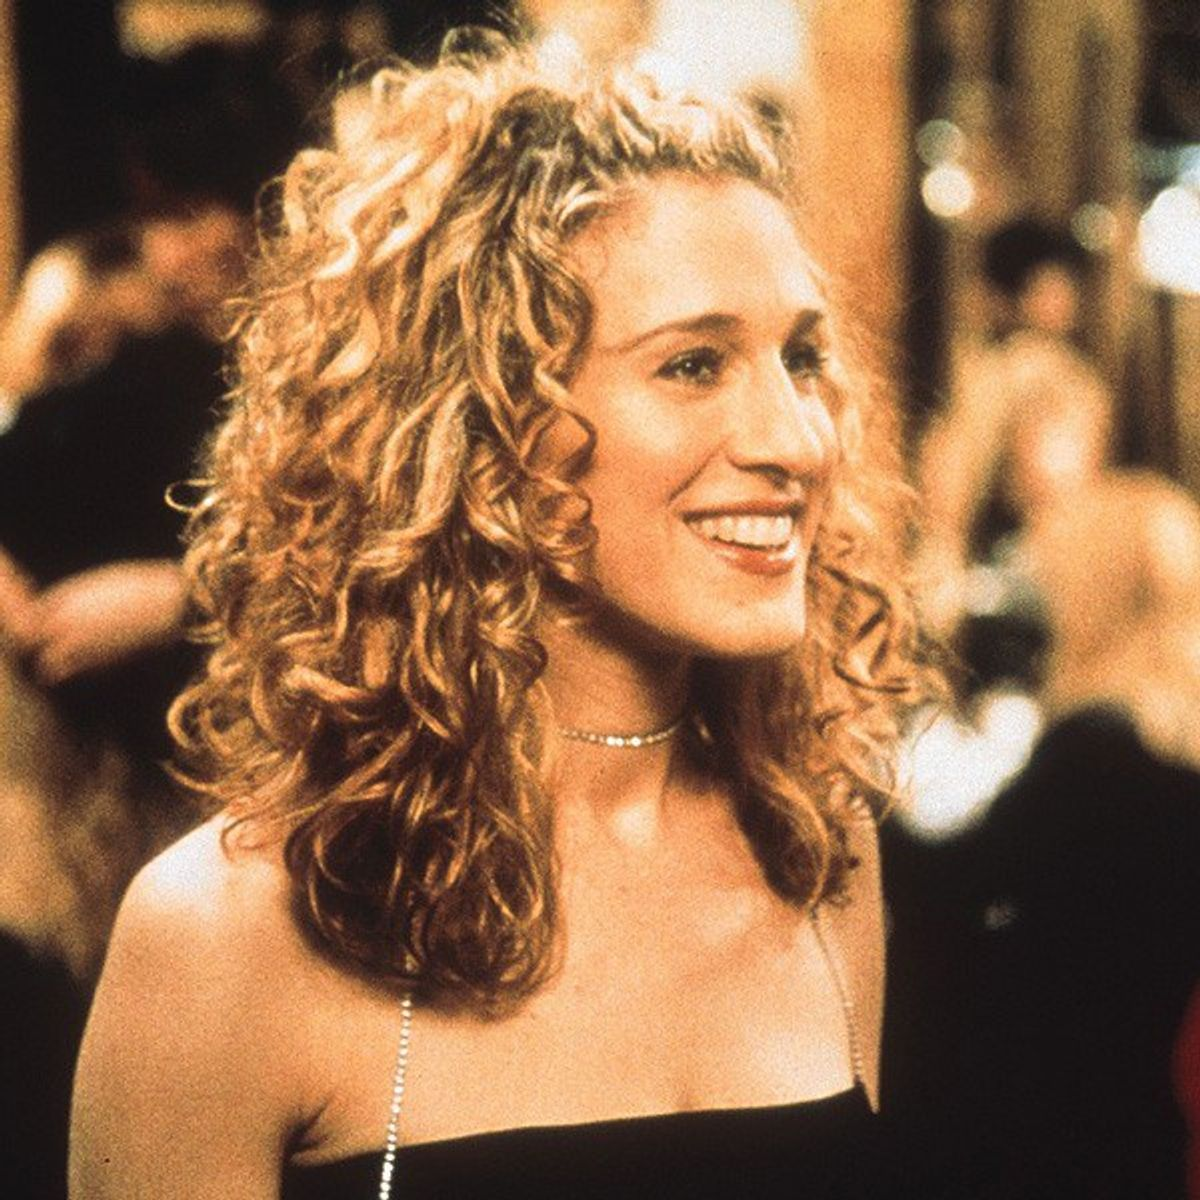 This Week In Fashion: Carrie Bradshaw